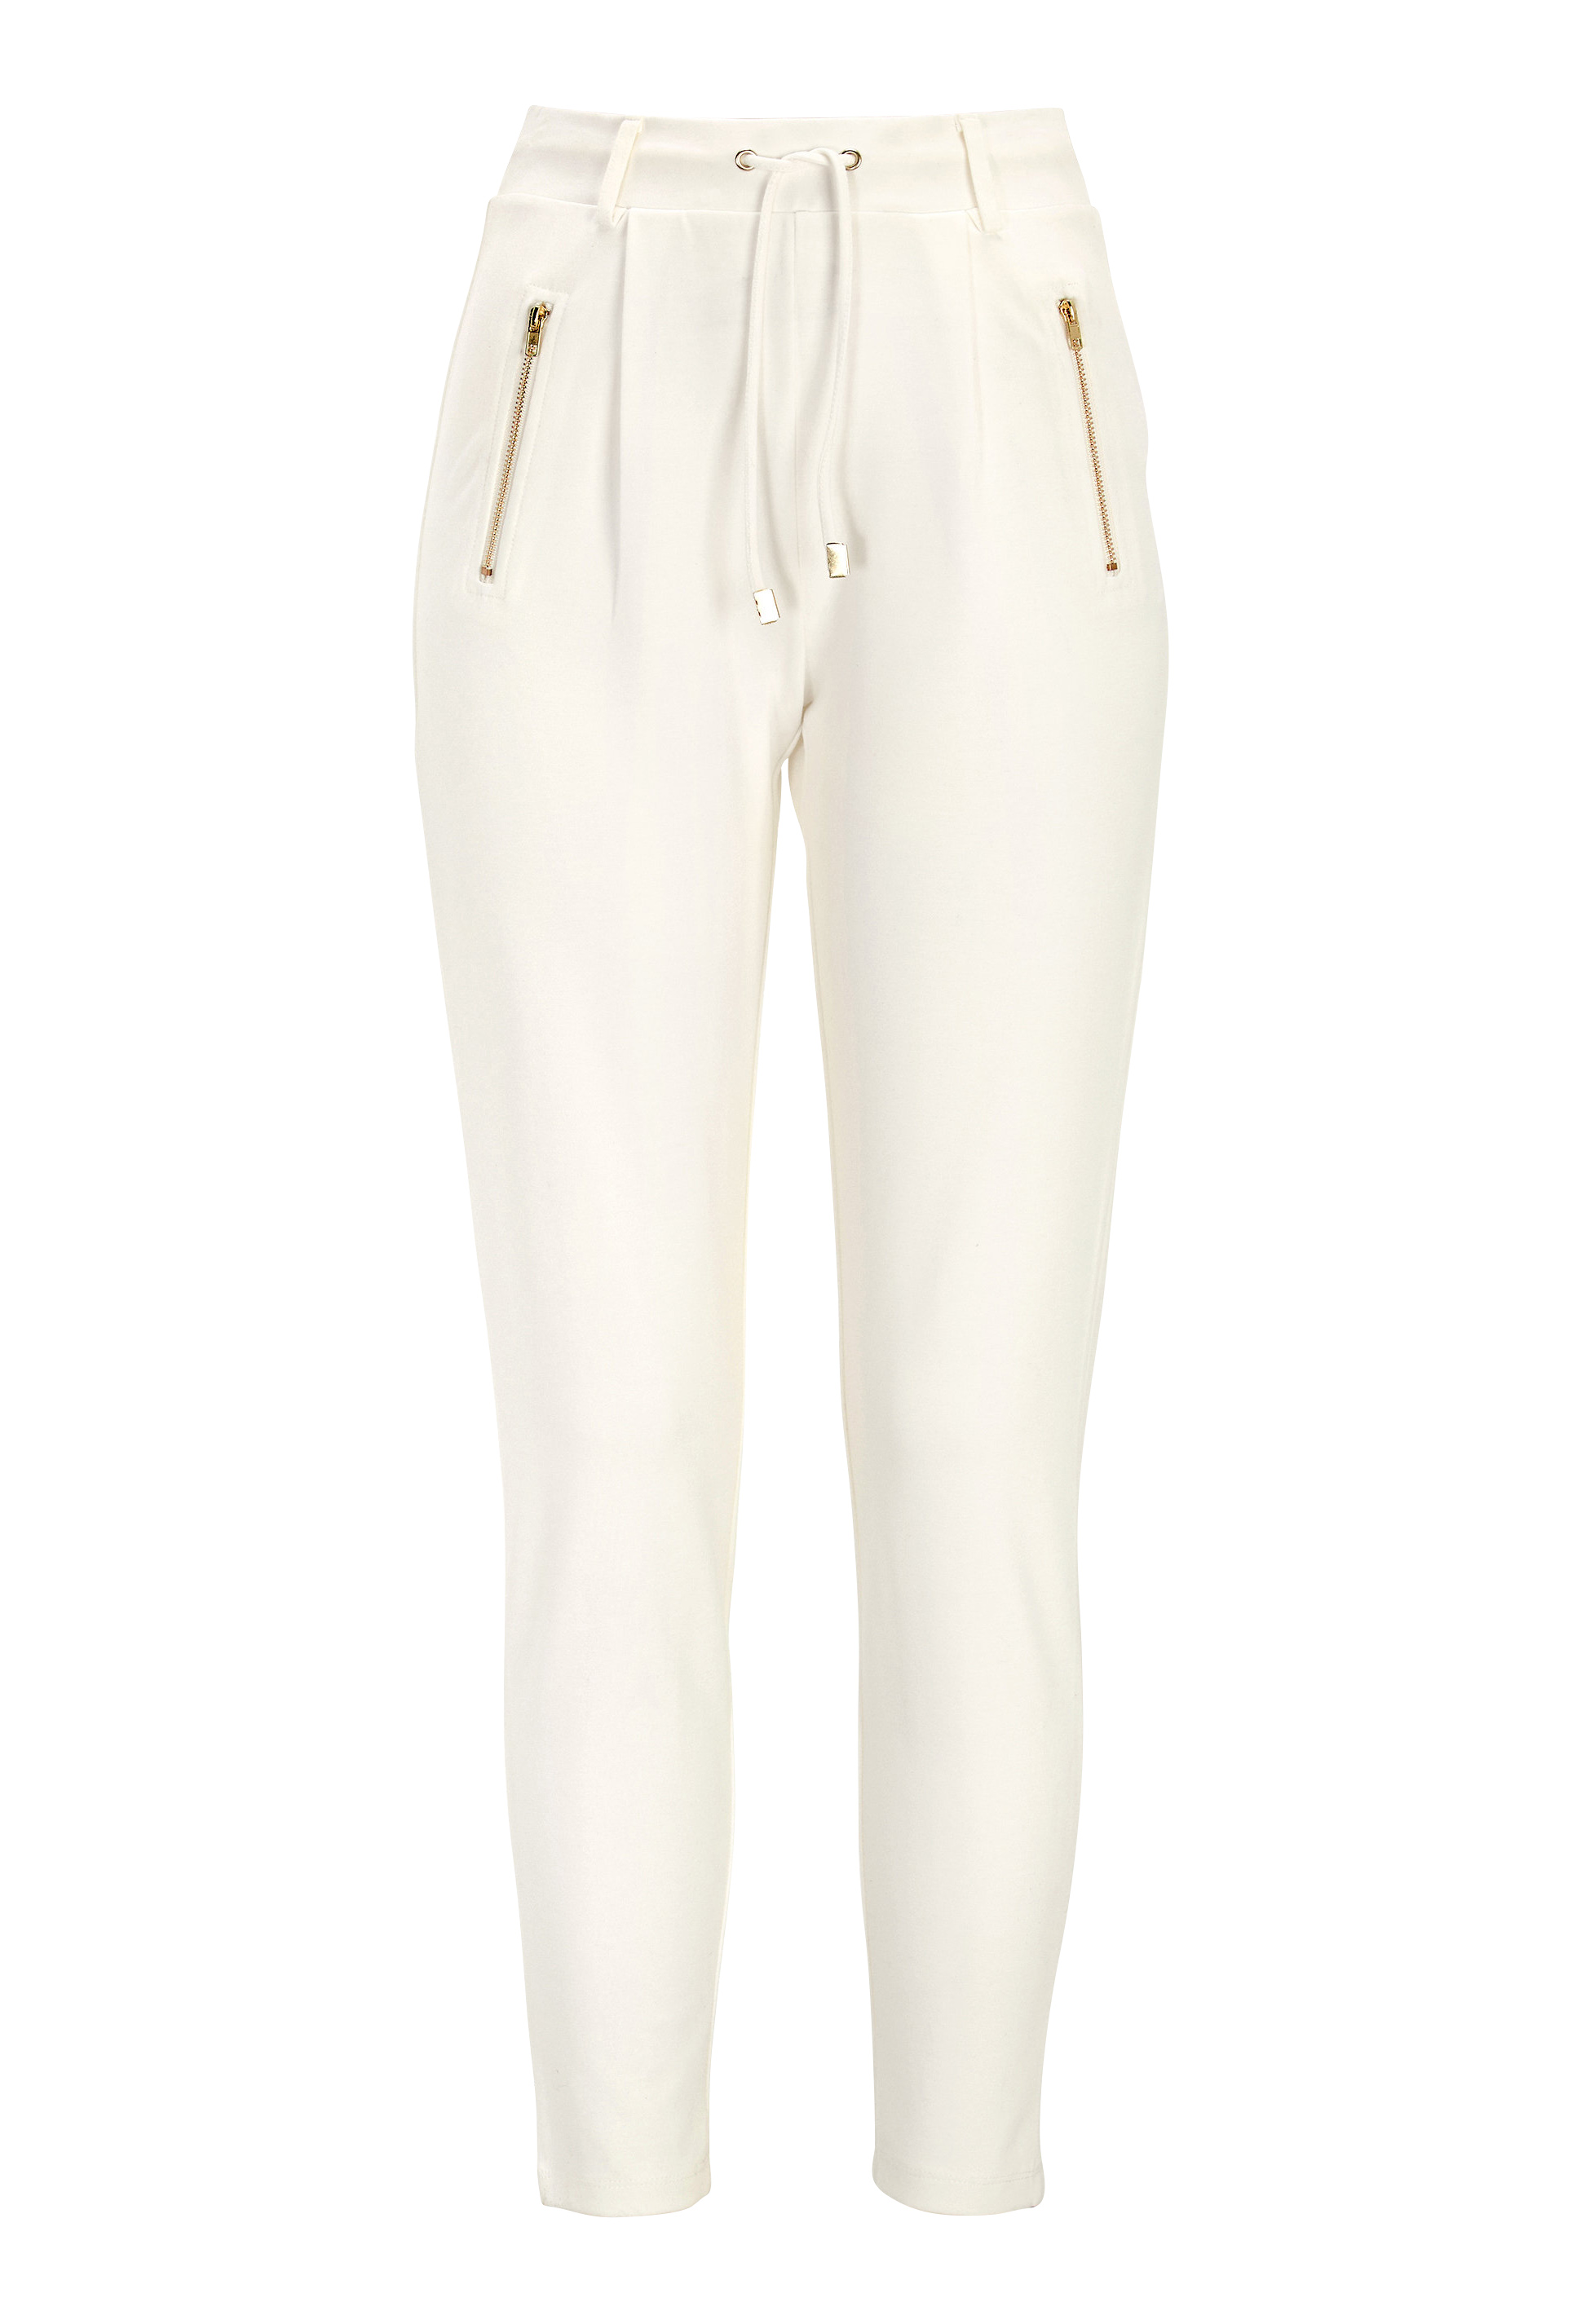 712943406c7 Happy Holly Cleo Trousers Light offwhite - Bubbleroom